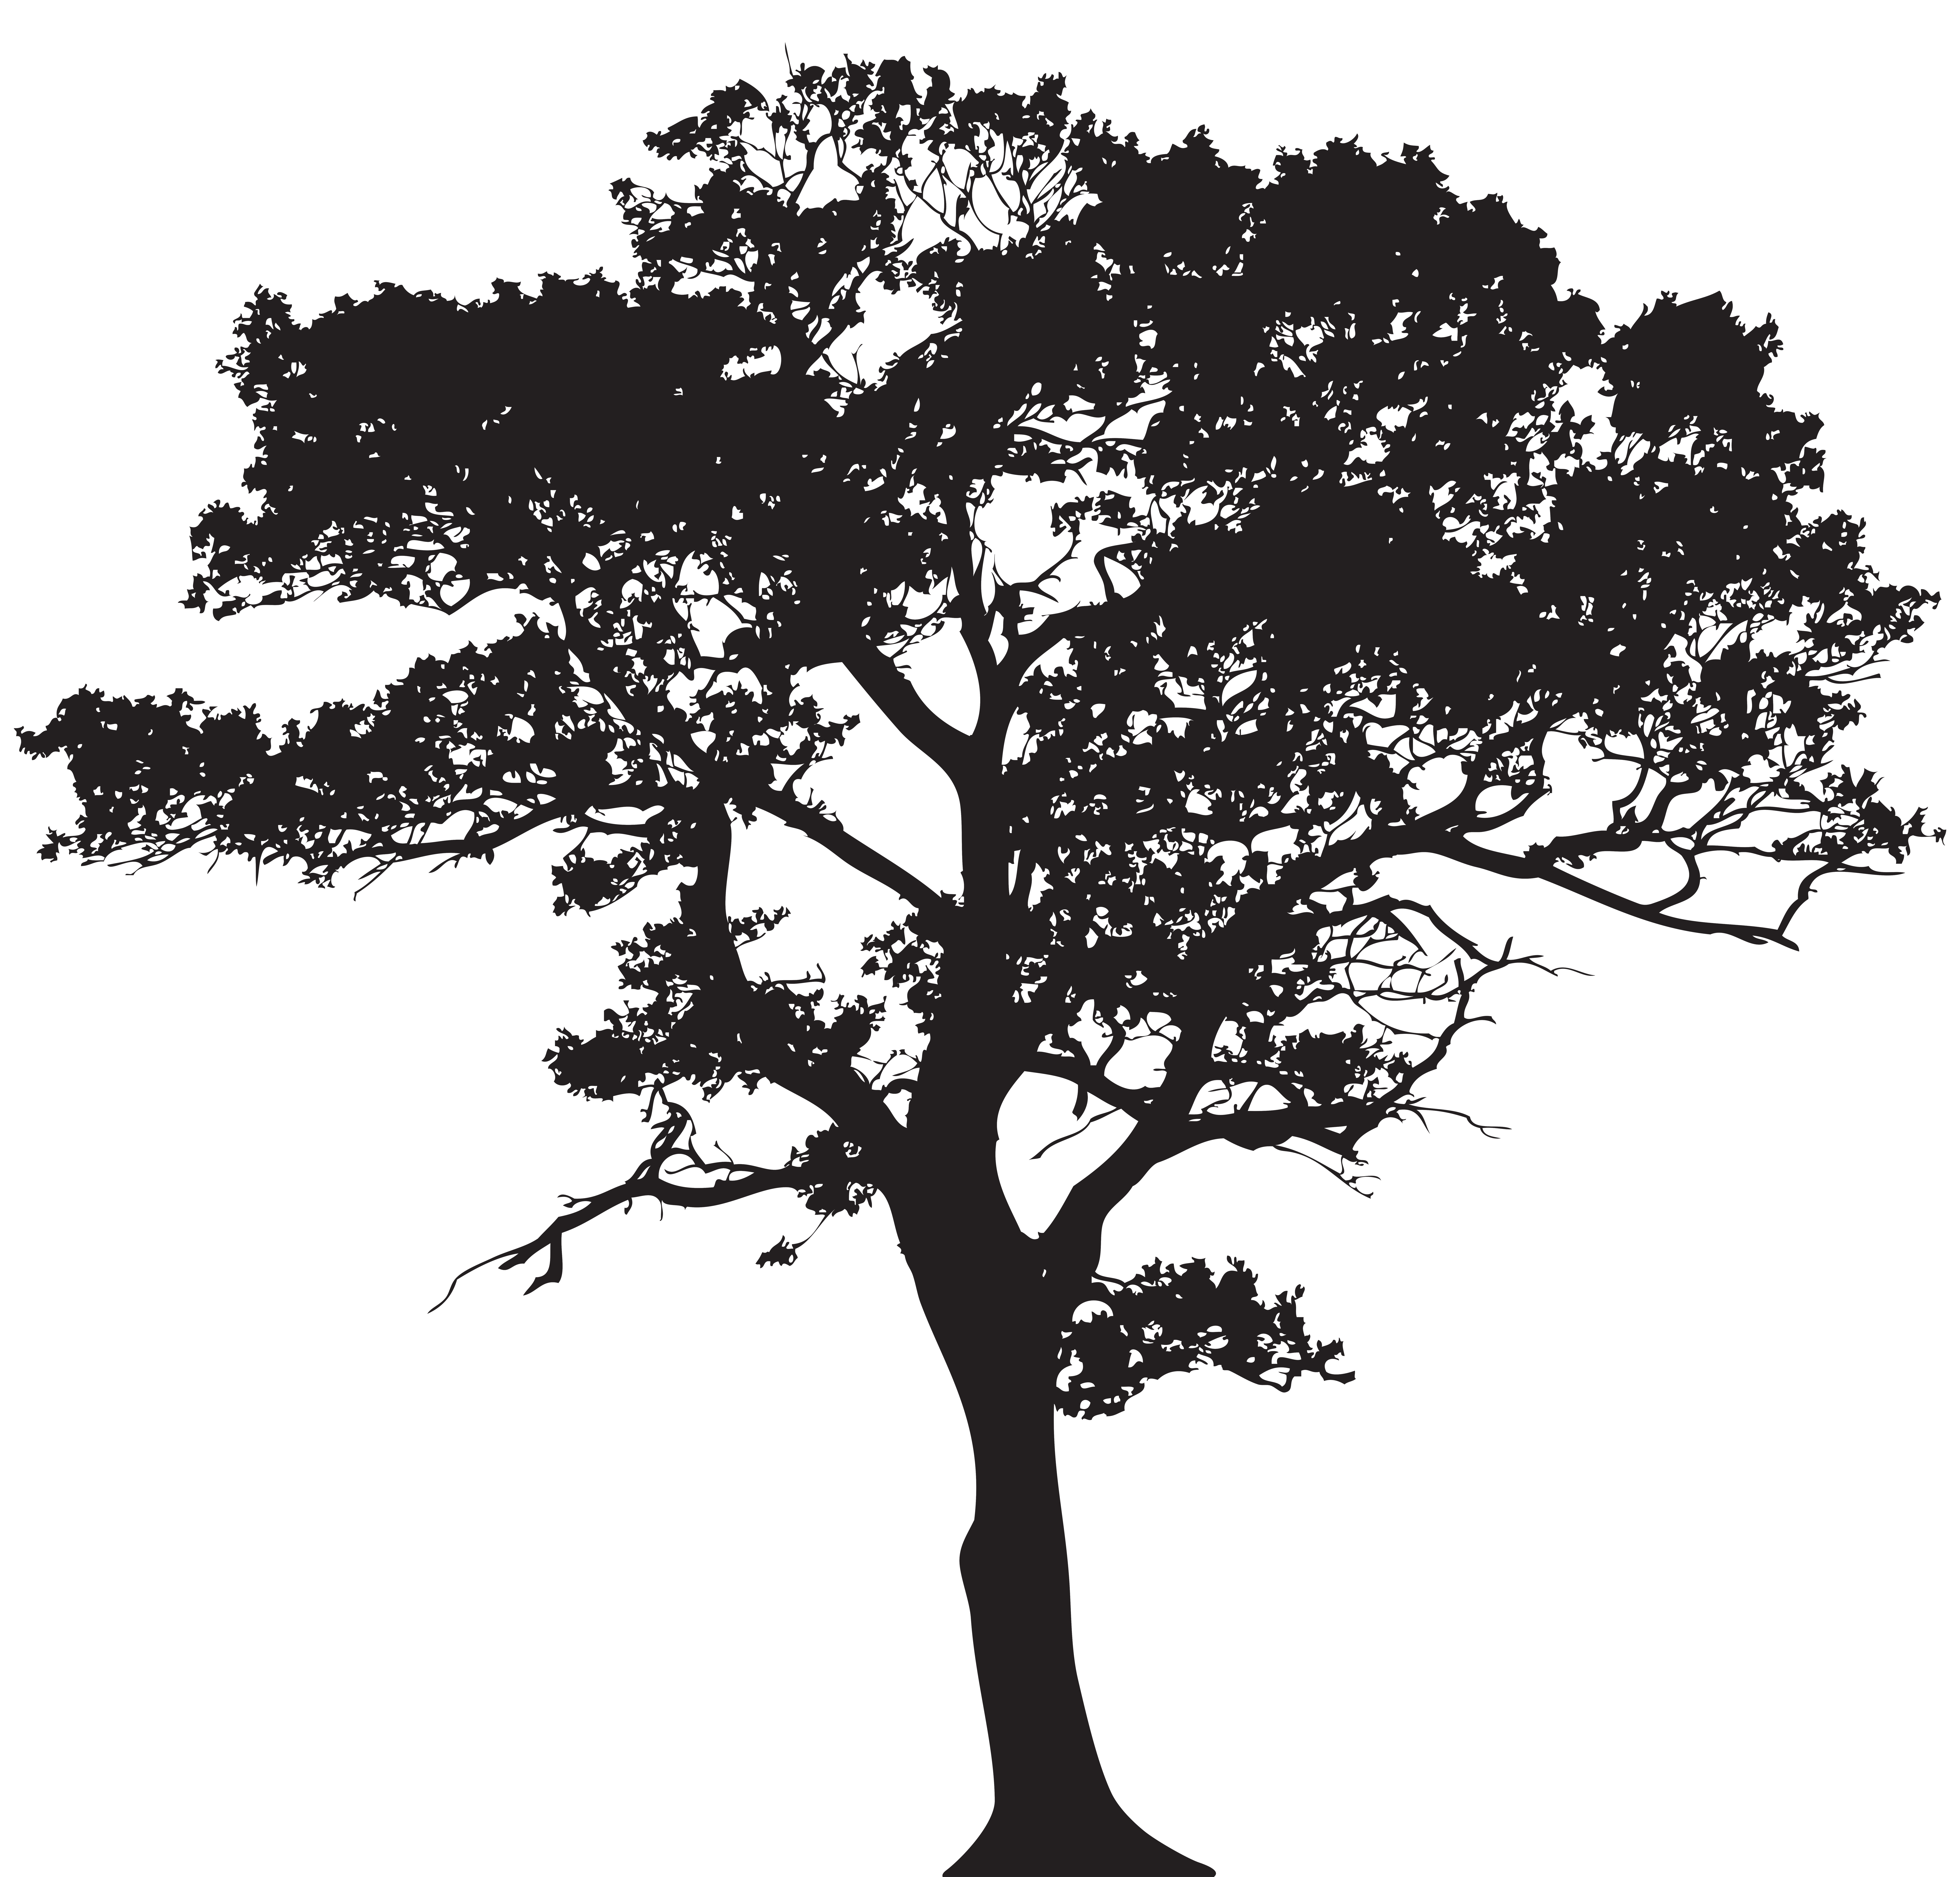 Tree png clip art. Fruits clipart silhouette